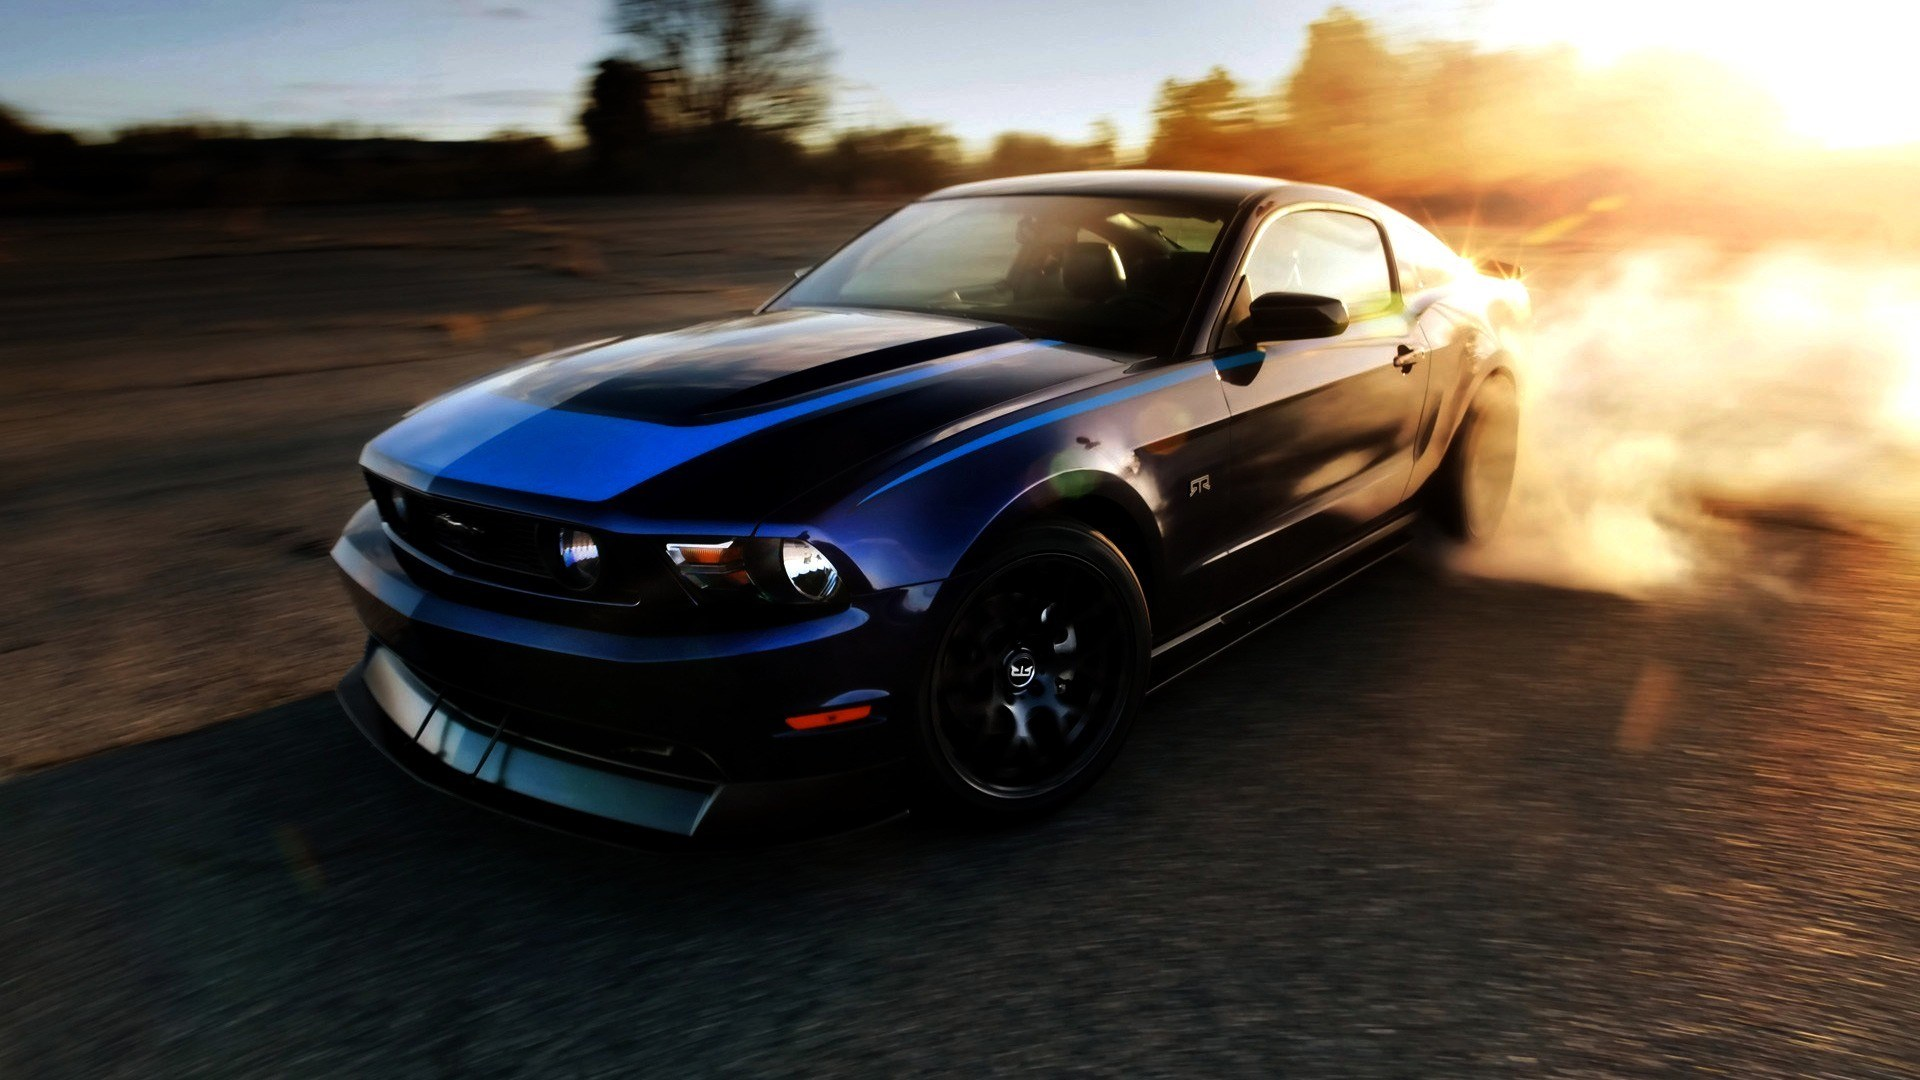 ford-mustang-burnout-hd-photos-1080p-cars-wallpaper-wp3605732